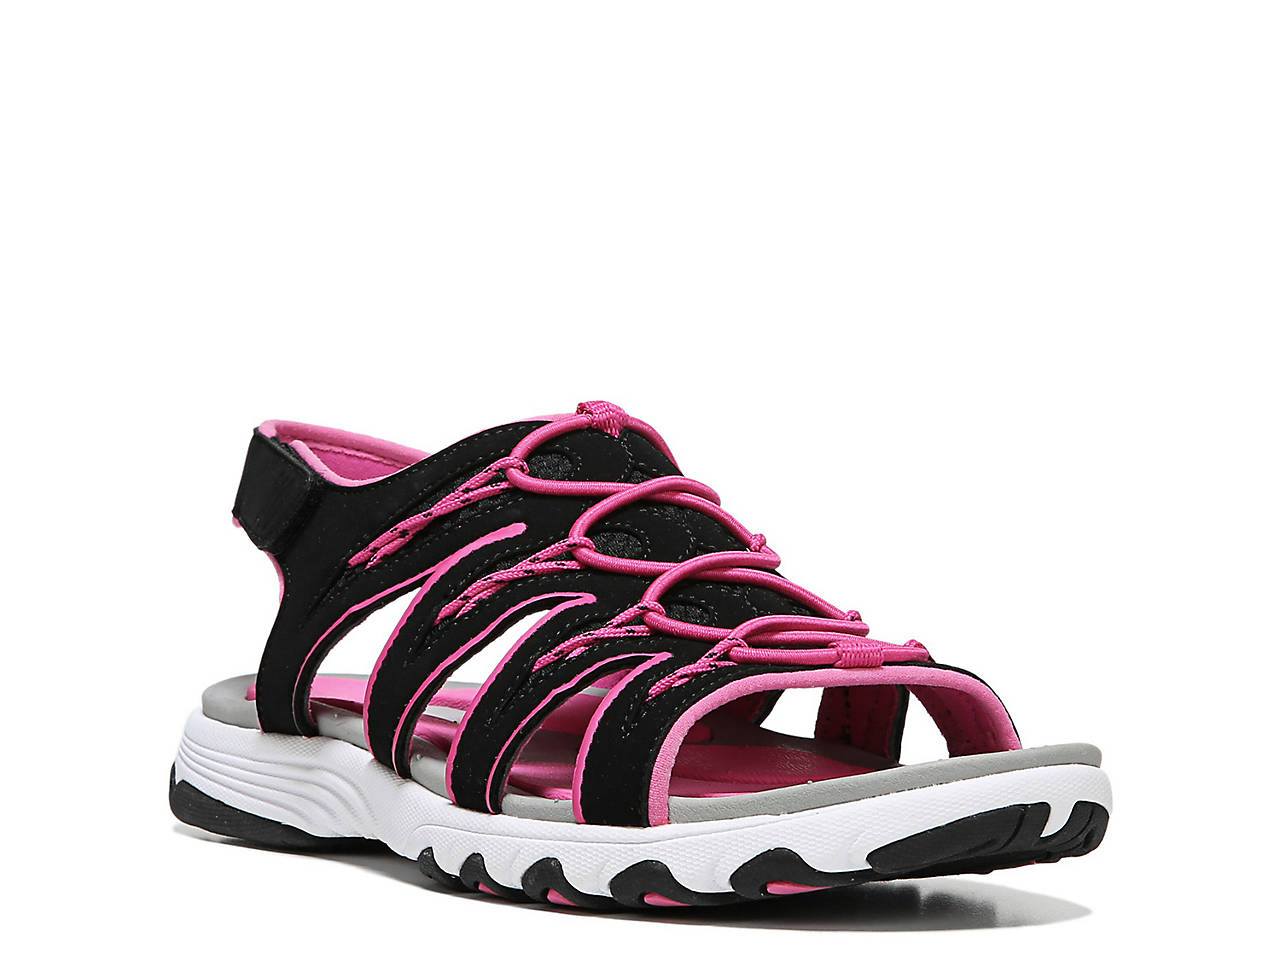 RYKA Women's Glance Athletic Sandal, Black/Pink, 8.5 M US